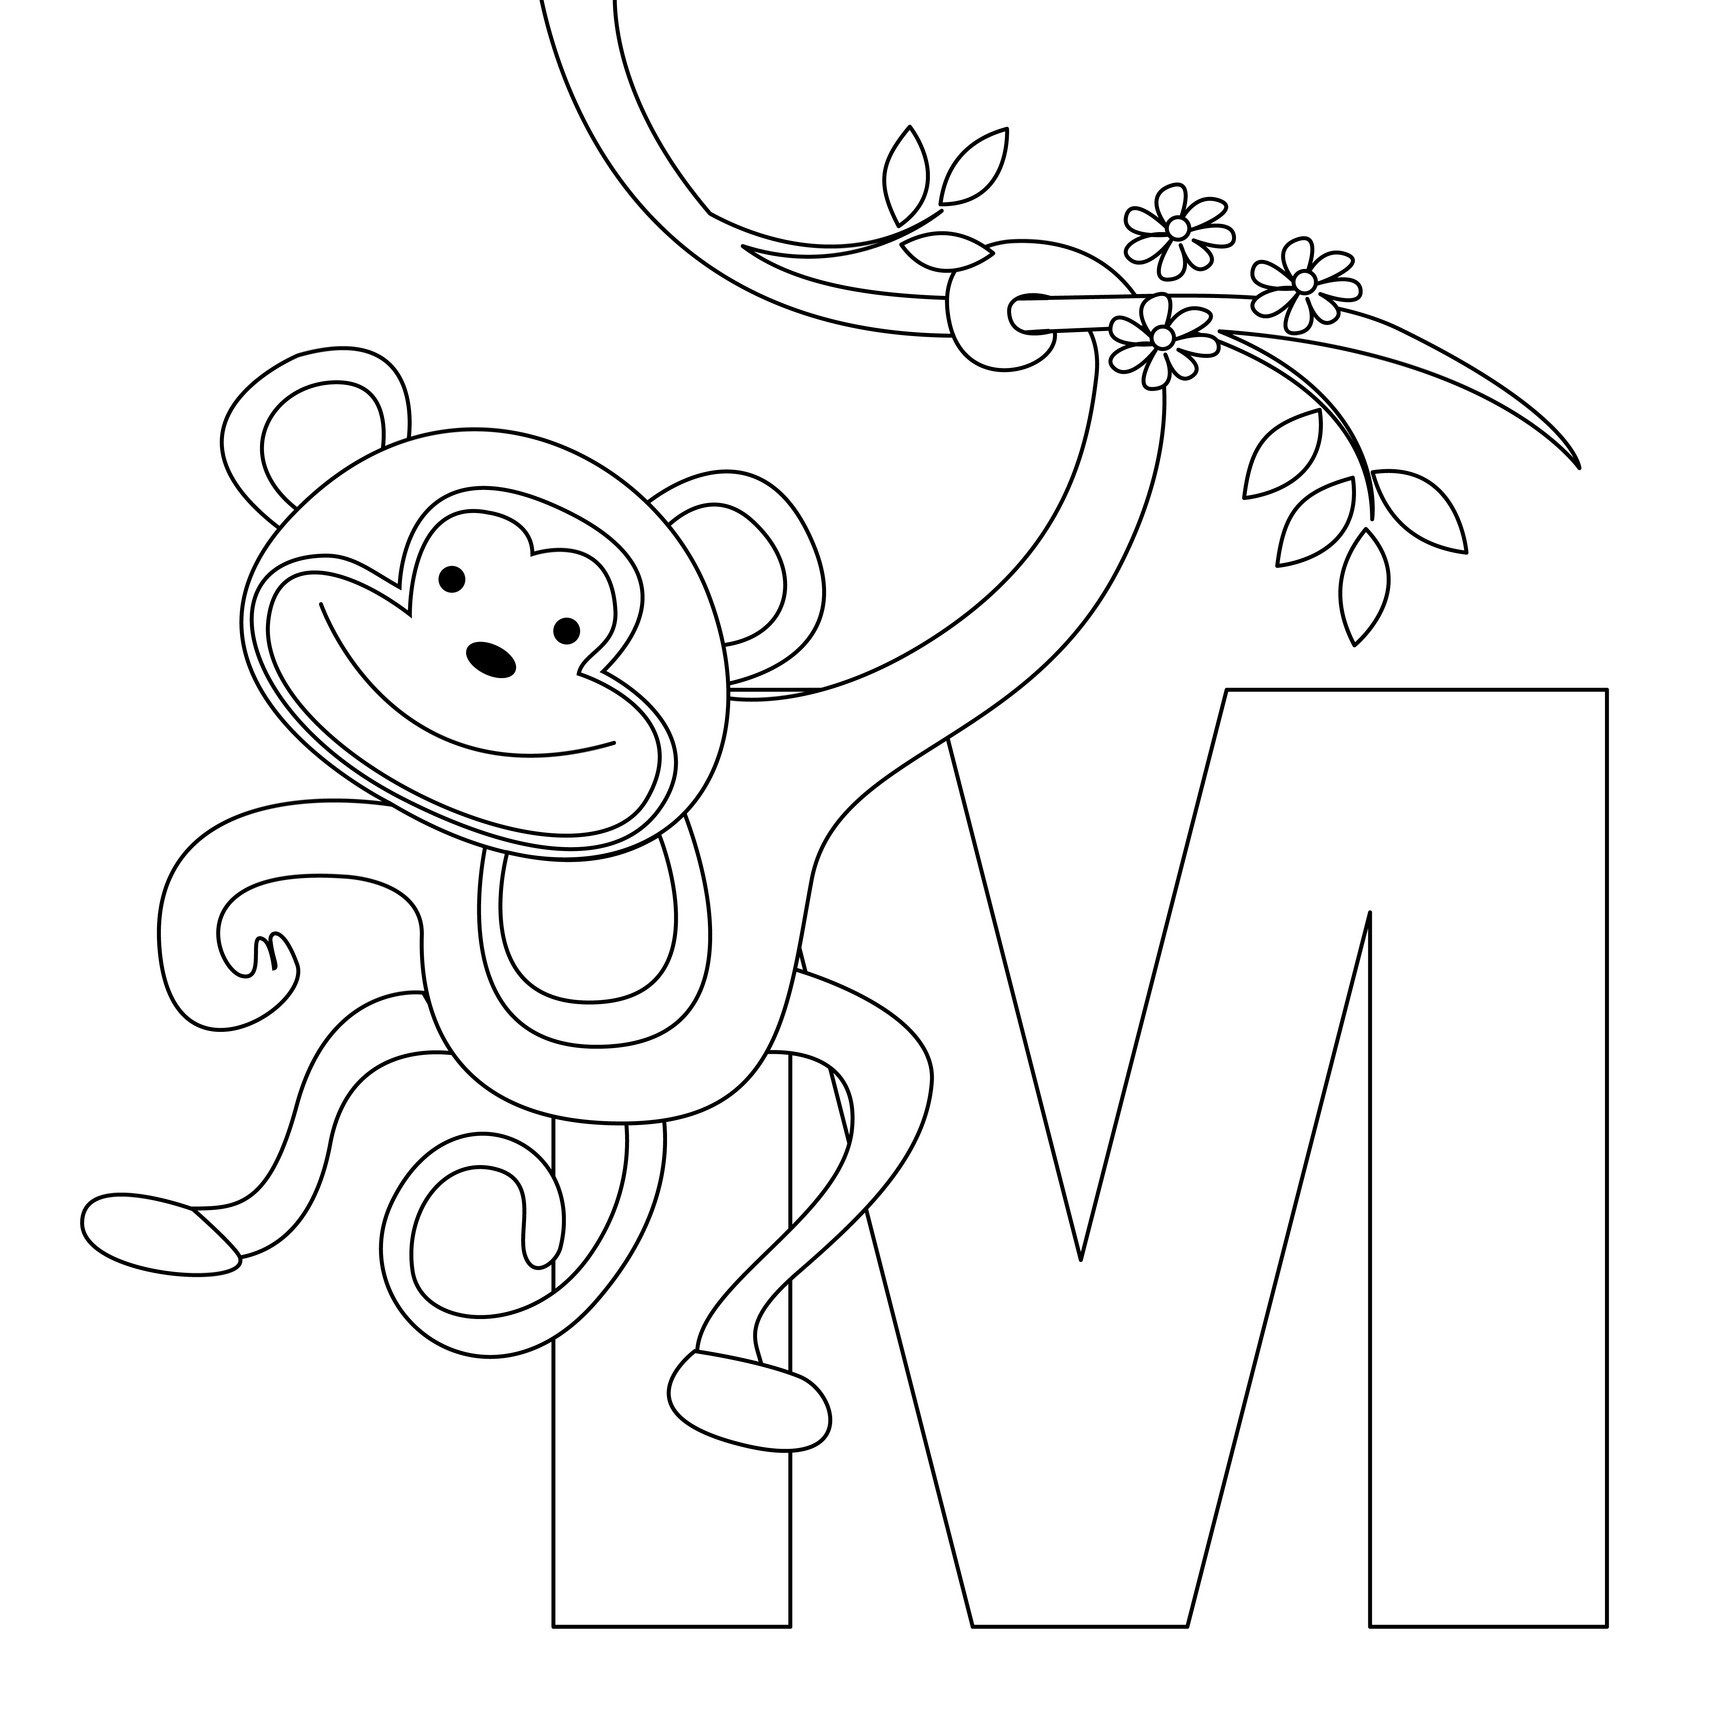 coloring letter m pictures letter m coloring pages of alphabet m letter words for coloring m pictures letter